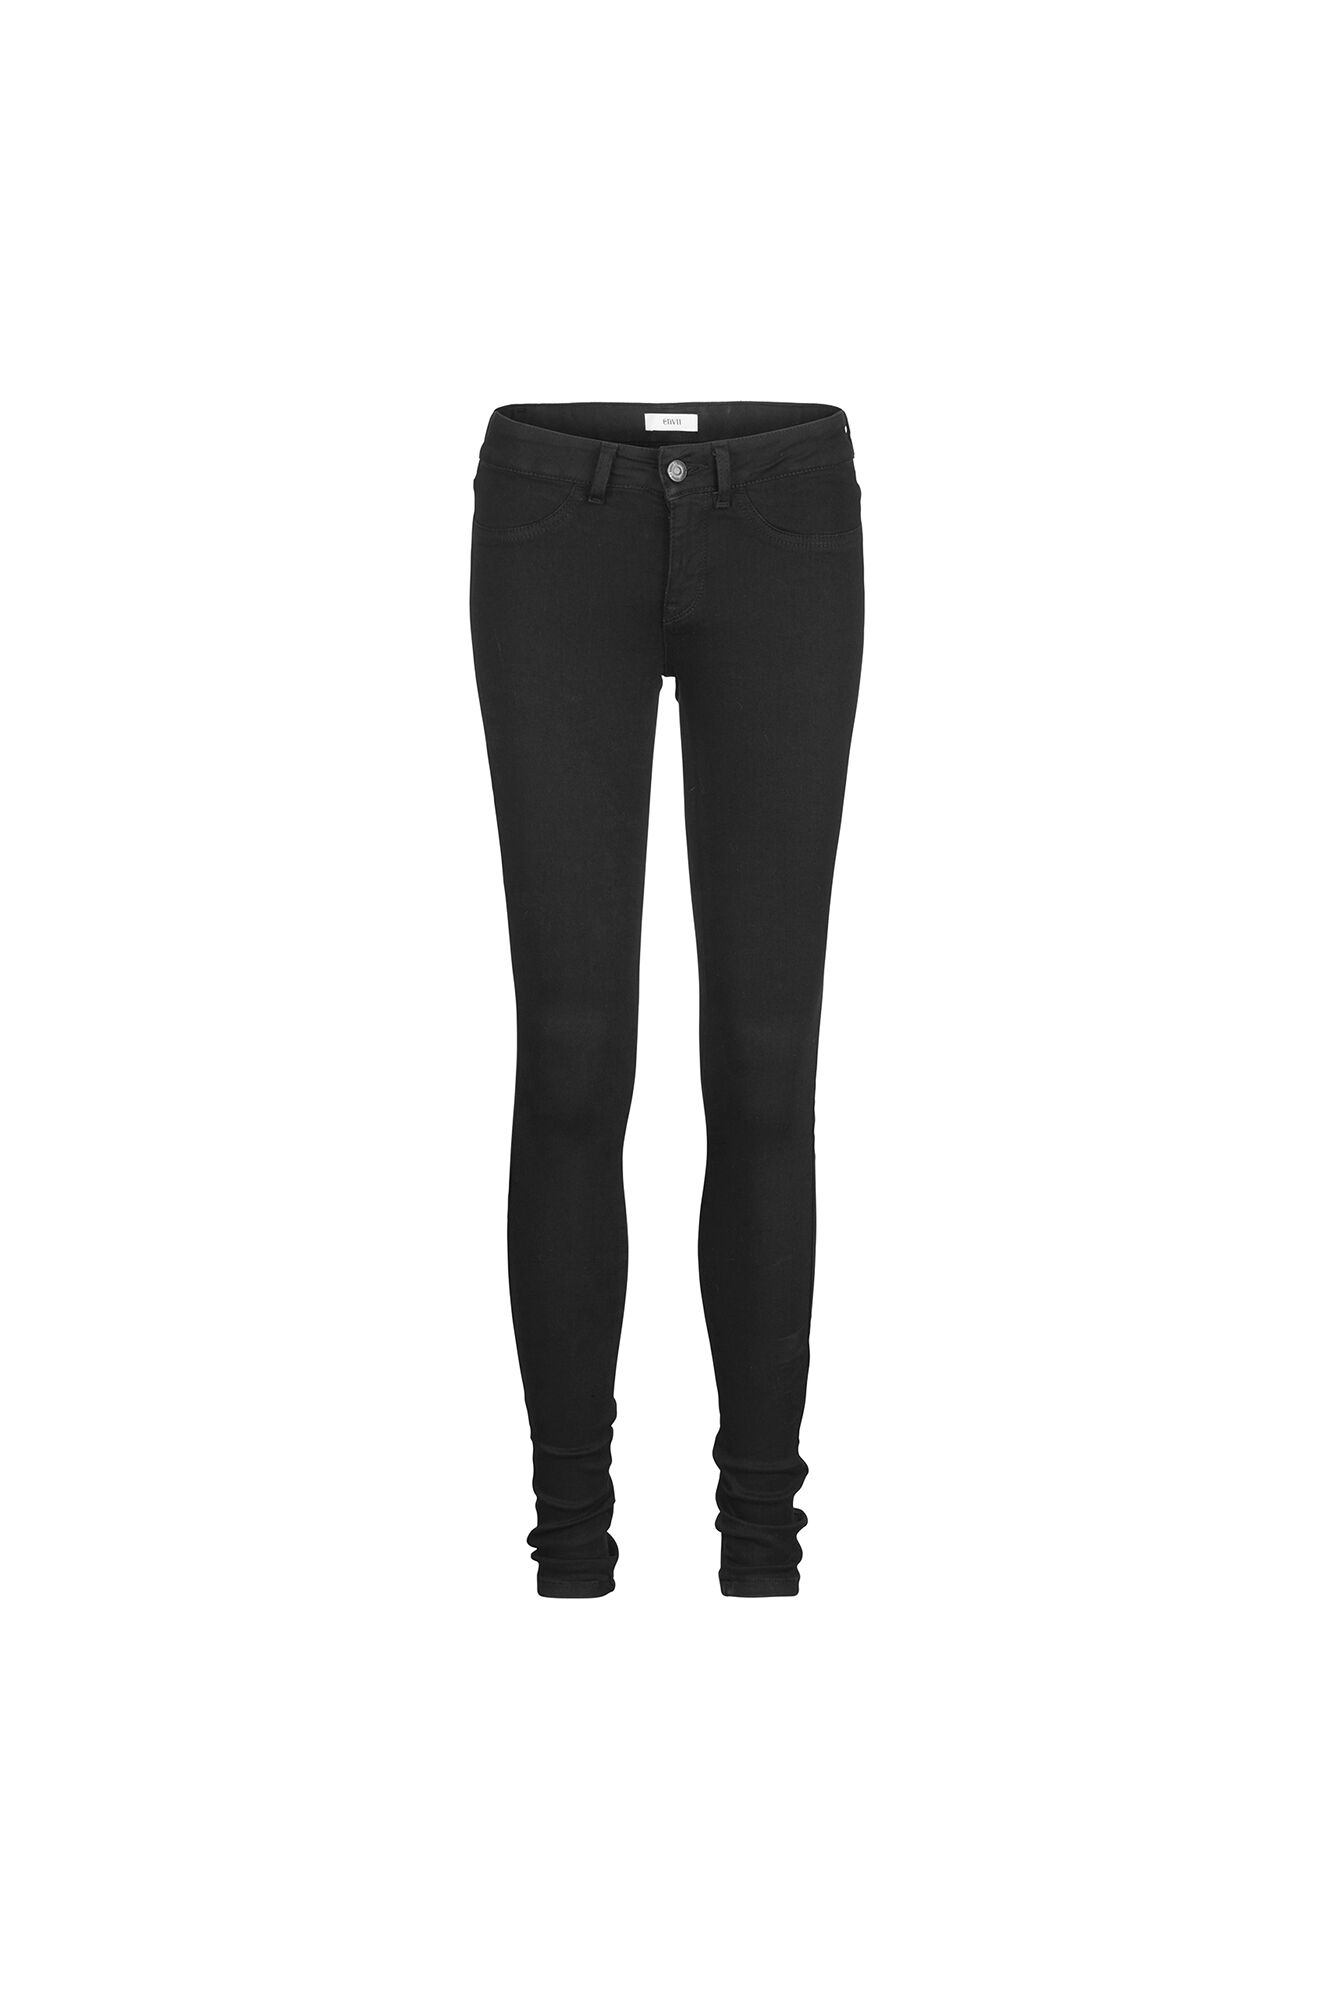 ENBLAIR JEANS BLACK 6421, BLACK